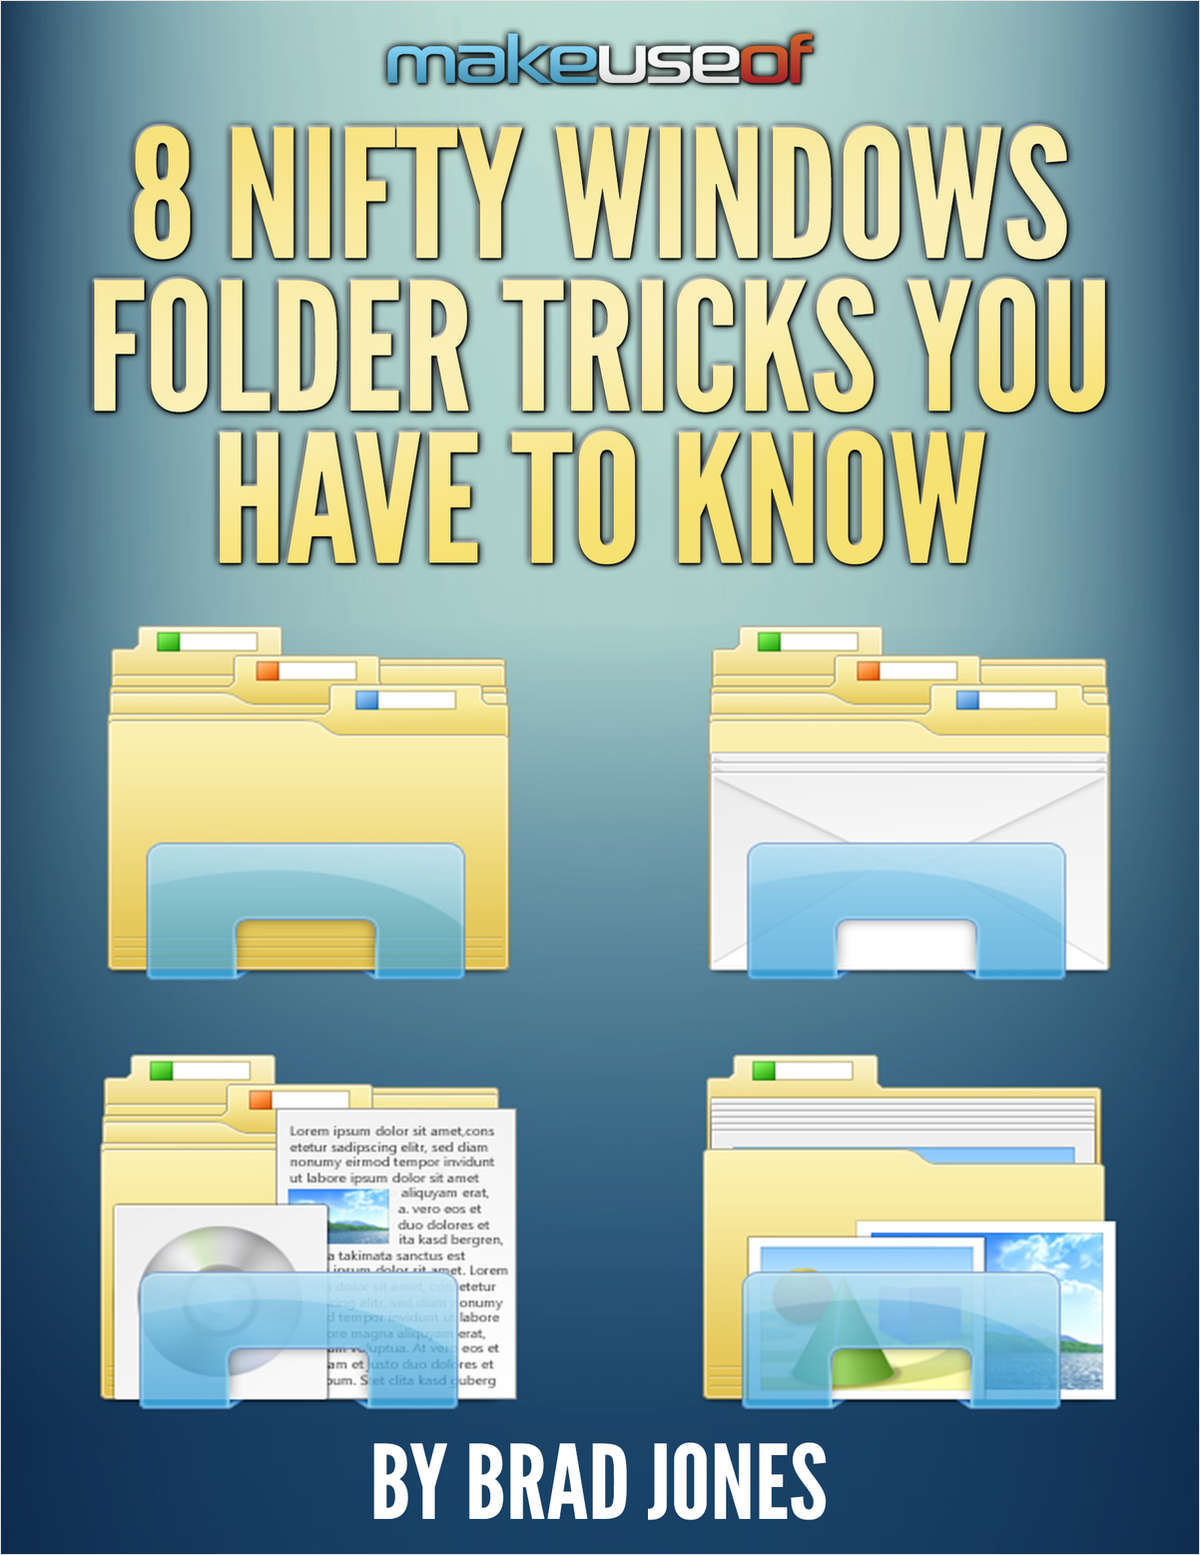 8 Nifty Windows Folder Tricks You Have to Know